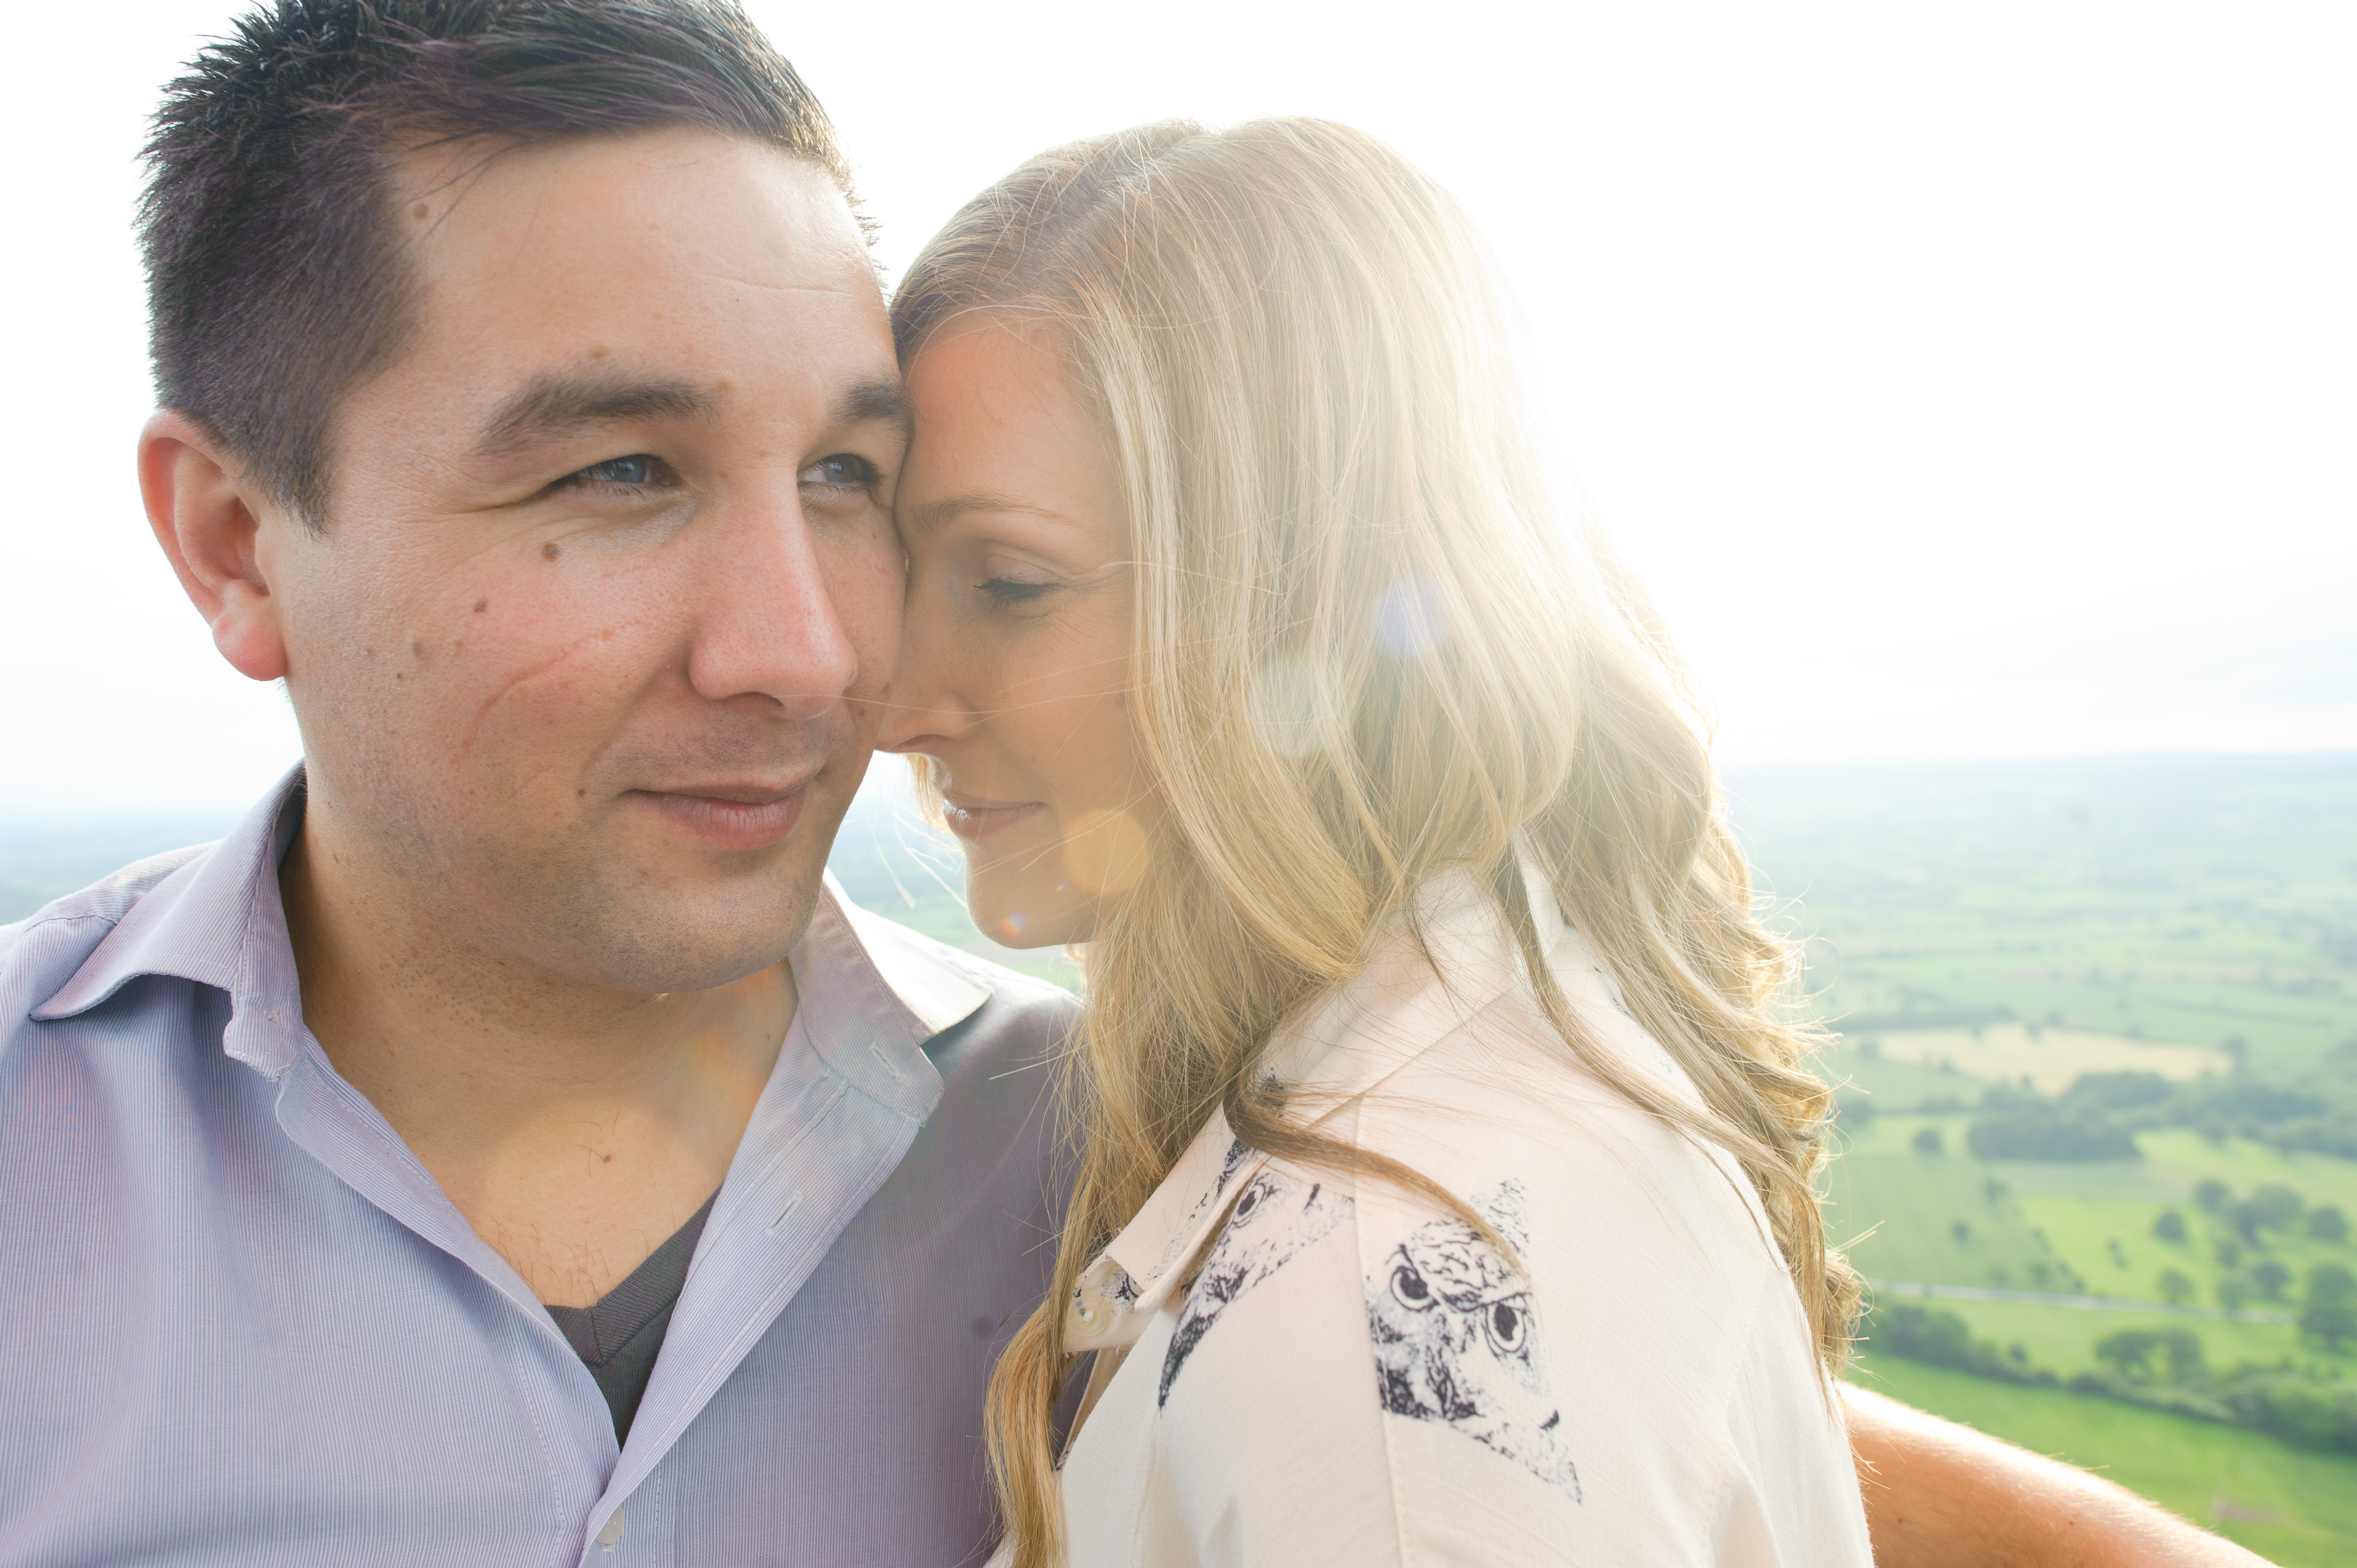 Virgin Balloon Flight Engagement Shoot - Daffodil Waves Photography